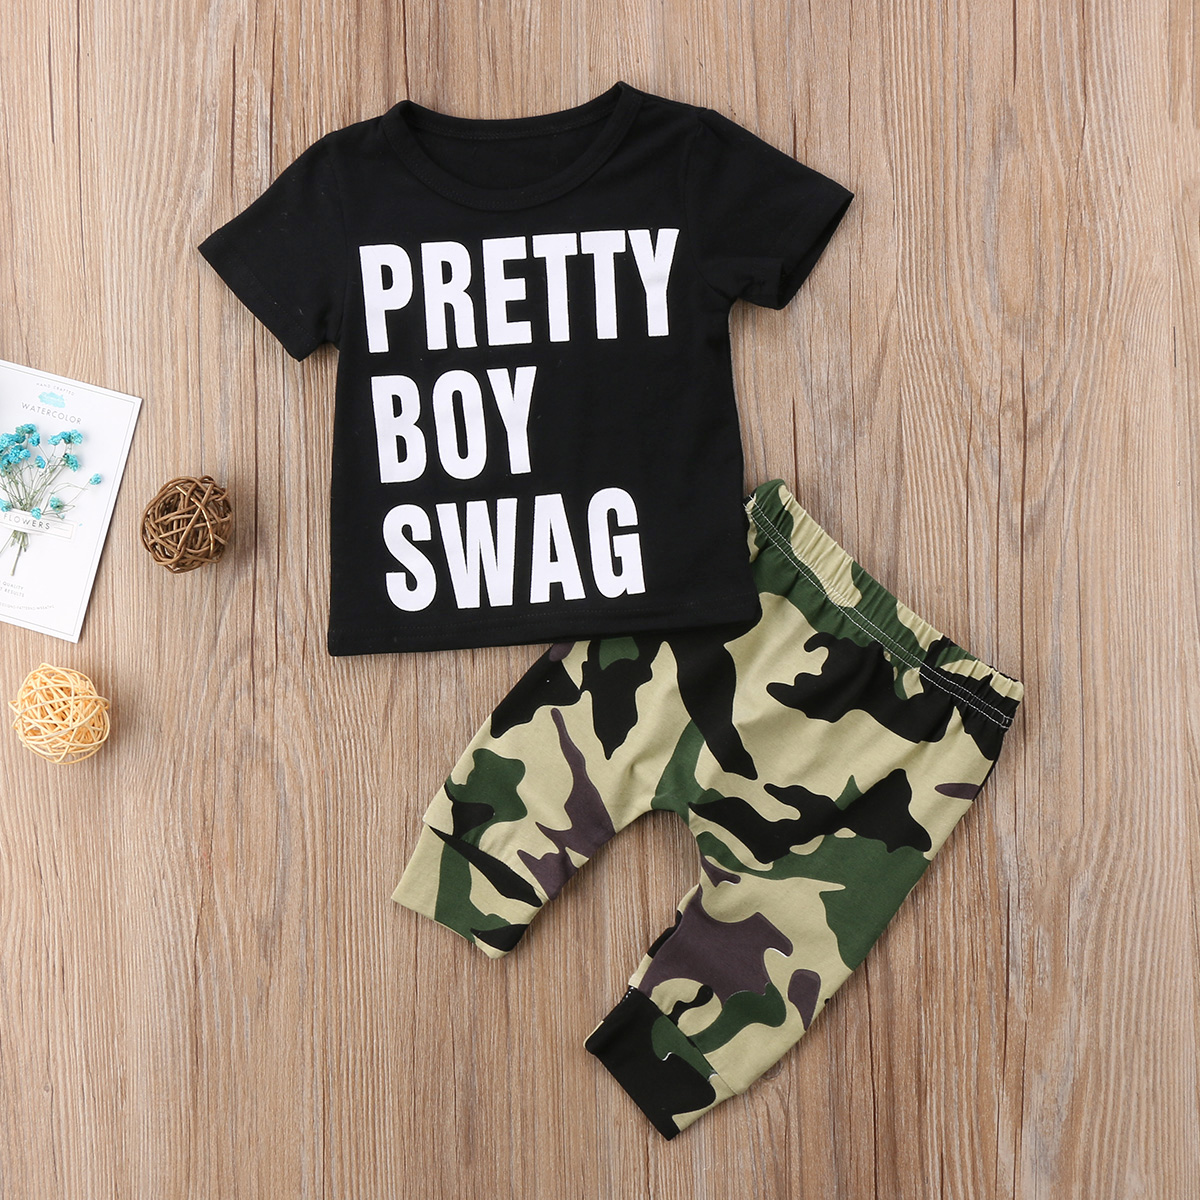 aa3aeff6 Aliexpress.com : Buy 2pcs Cool Baby Boy Short Sleeve Swag T shirt Tops+ Camouflage Pants Leggings Outfit Toddler Kids Summer Clothes Set from  Reliable baby ...